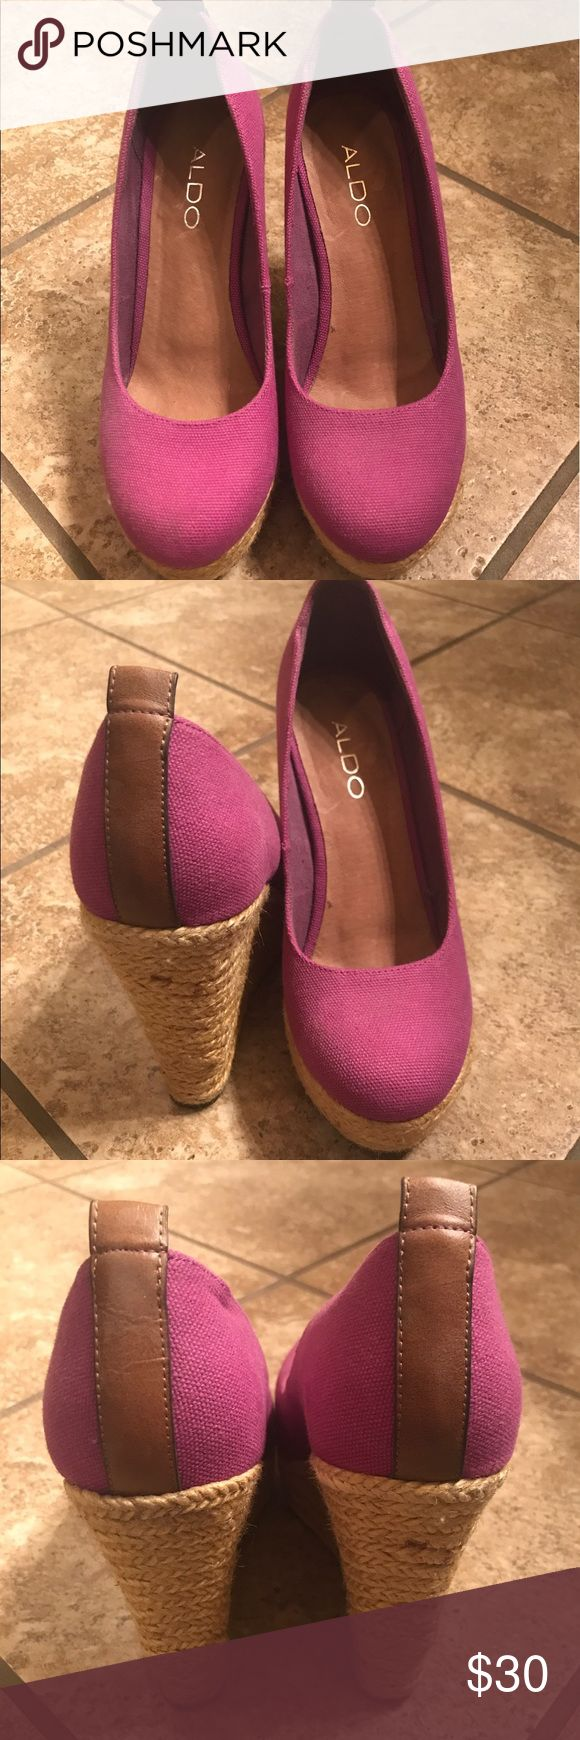 Purple Espadrille Wedge Aldo 7 This pair of wedges is by Aldo & is a size 7. They were only worn once and are in excellent condition. They are too small for my 7.5 feet. They are a purple linen fabric with rope-like wedges. Aldo Shoes Wedges